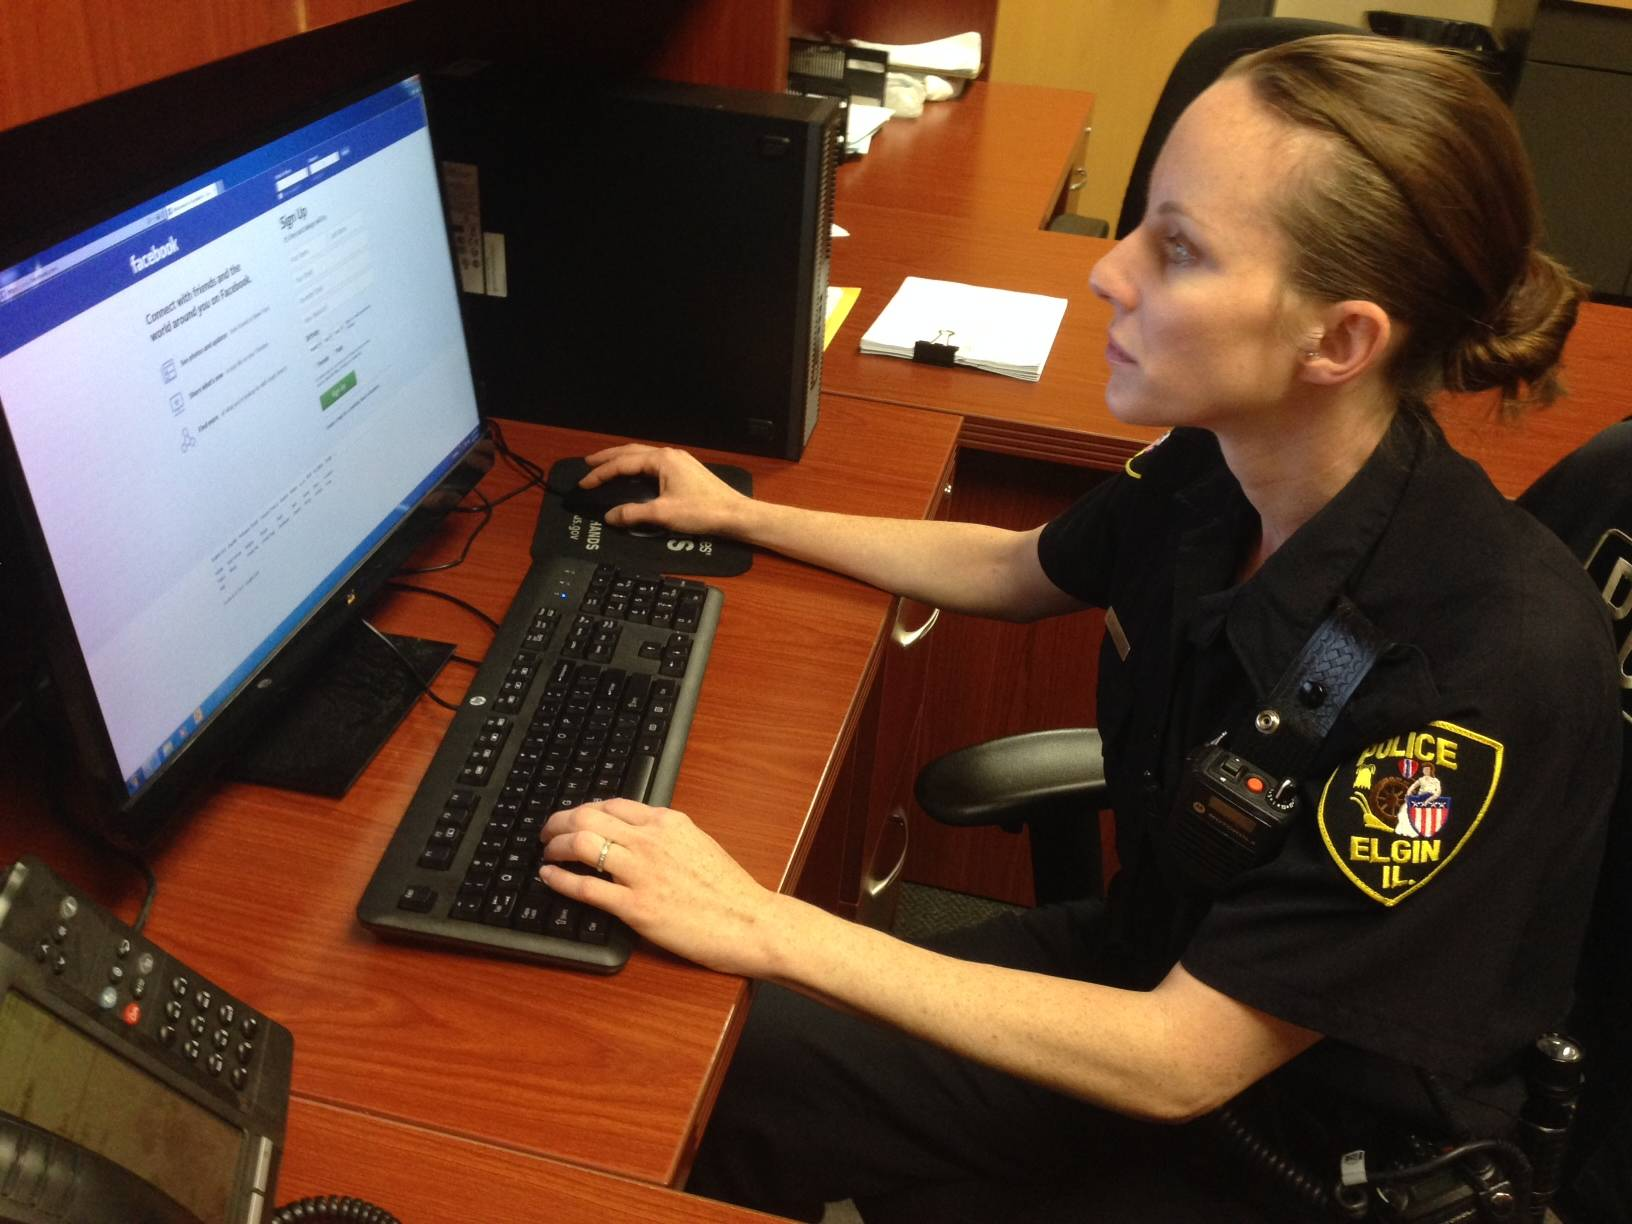 Members of the Elgin Police Department's crime-free housing unit and resident officer program, including officer Shelley Mendiola, are in charge of conducting checks on registered sex offenders. Elgin police conduct at-home checks of sex offenders twice a year and also monitor social networking sites, such as Facebook, Twitter and Instagram.